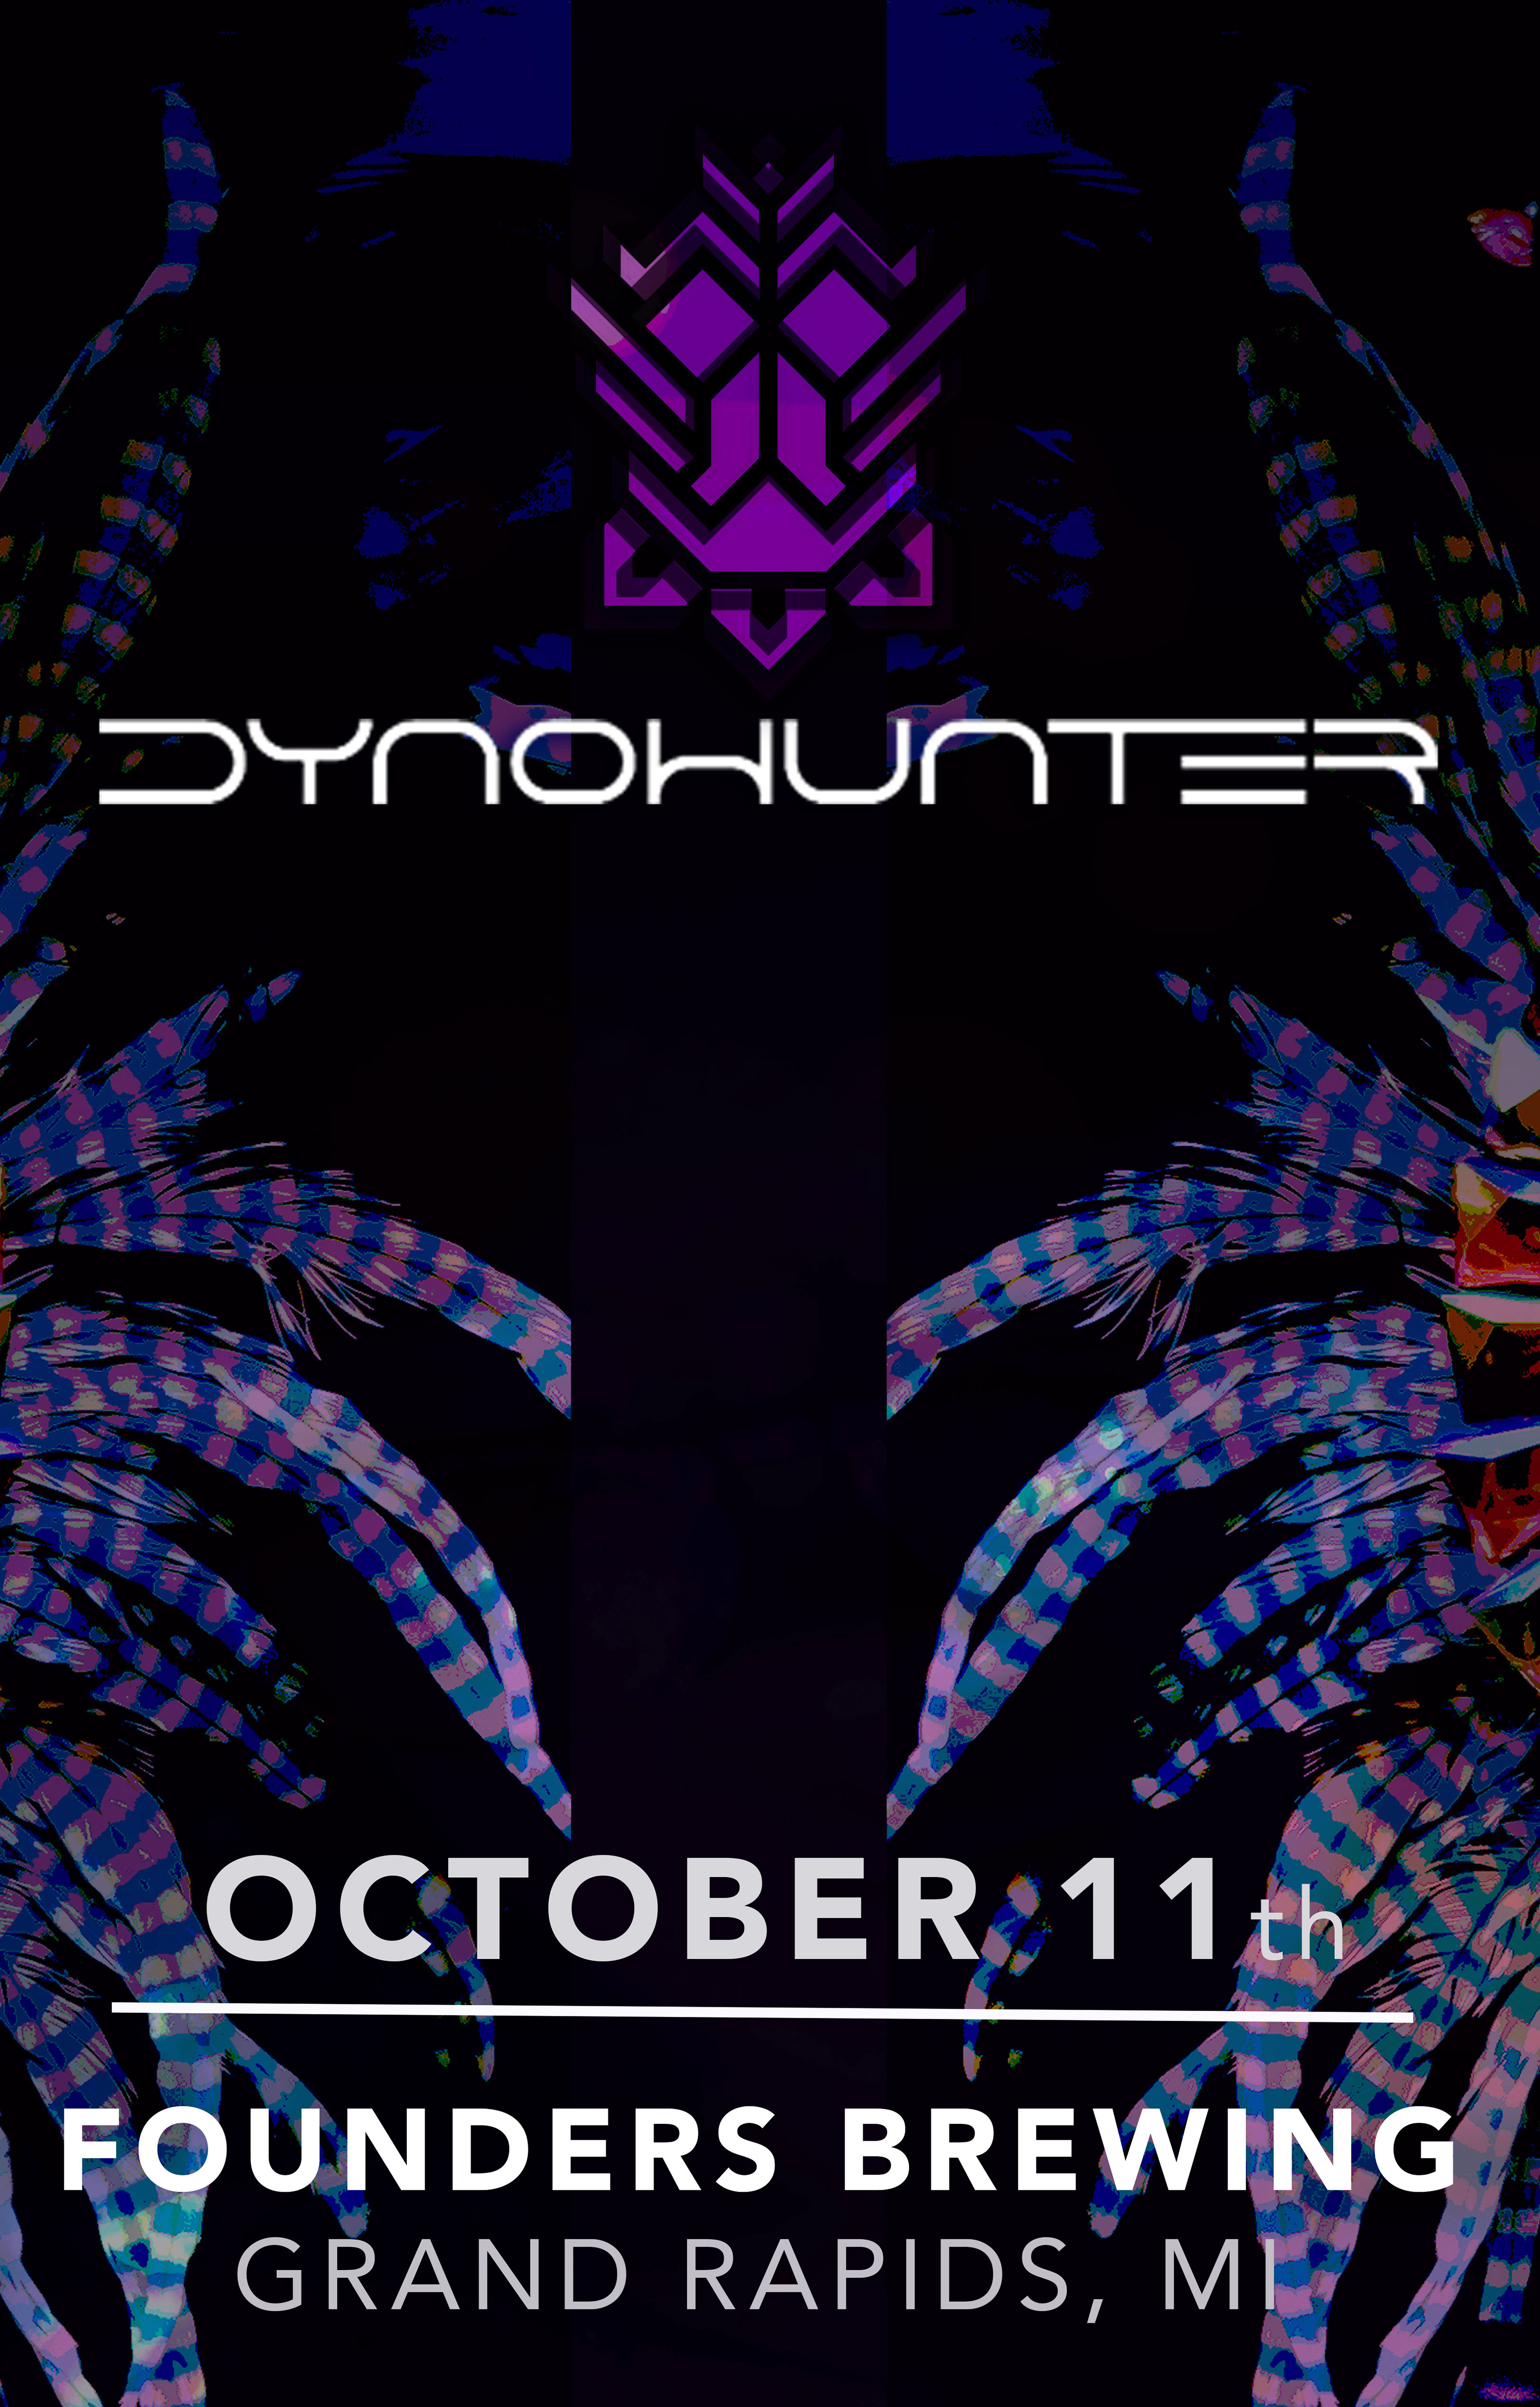 Dynohunter event poster hosted by Founders Brewing Co.